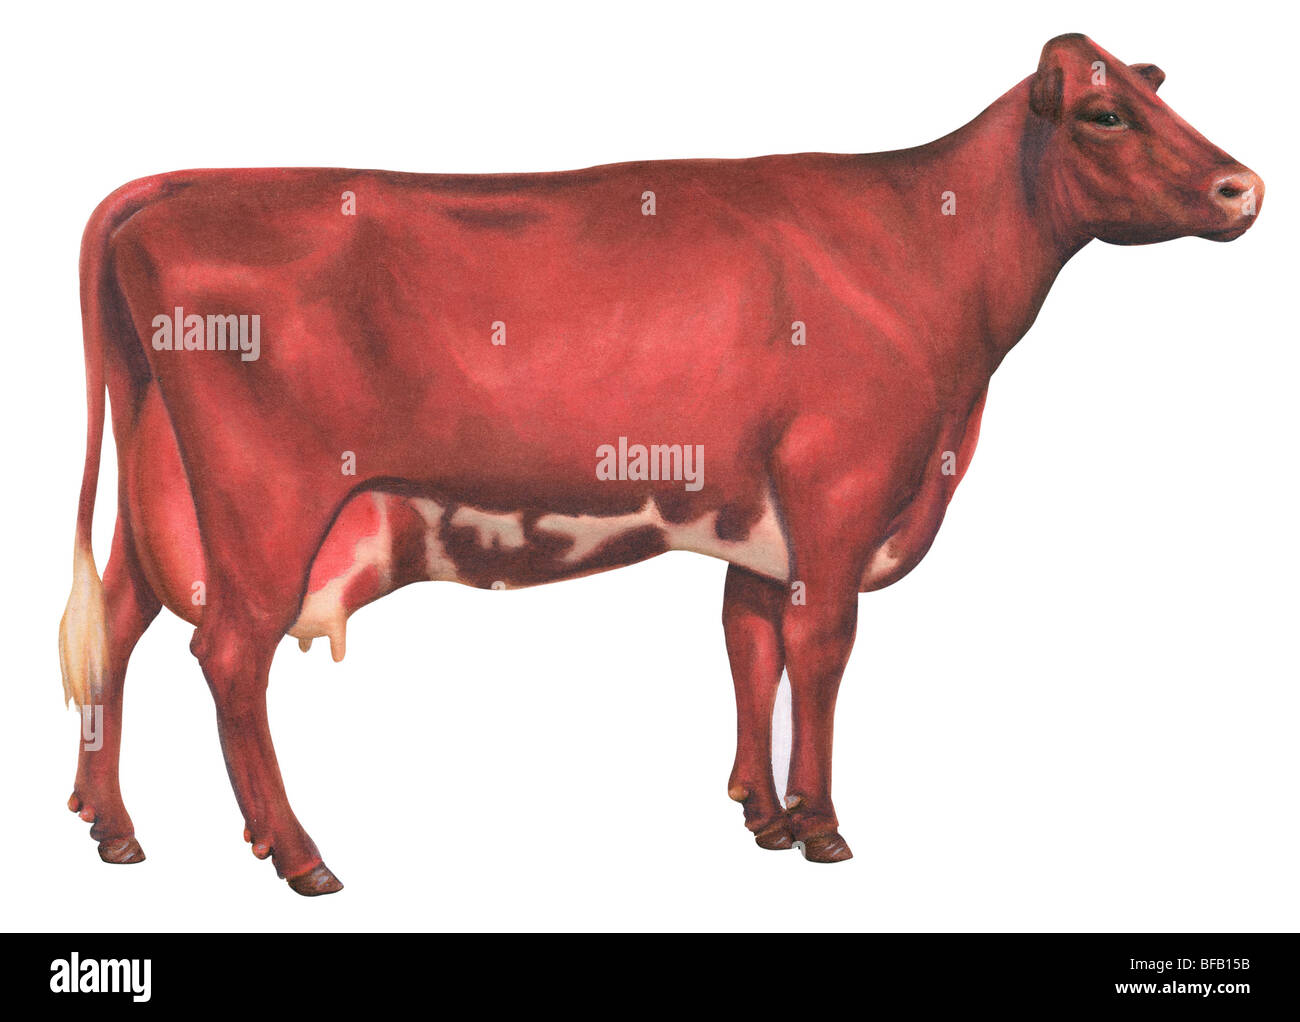 Milking Shorthorn cow - Stock Image